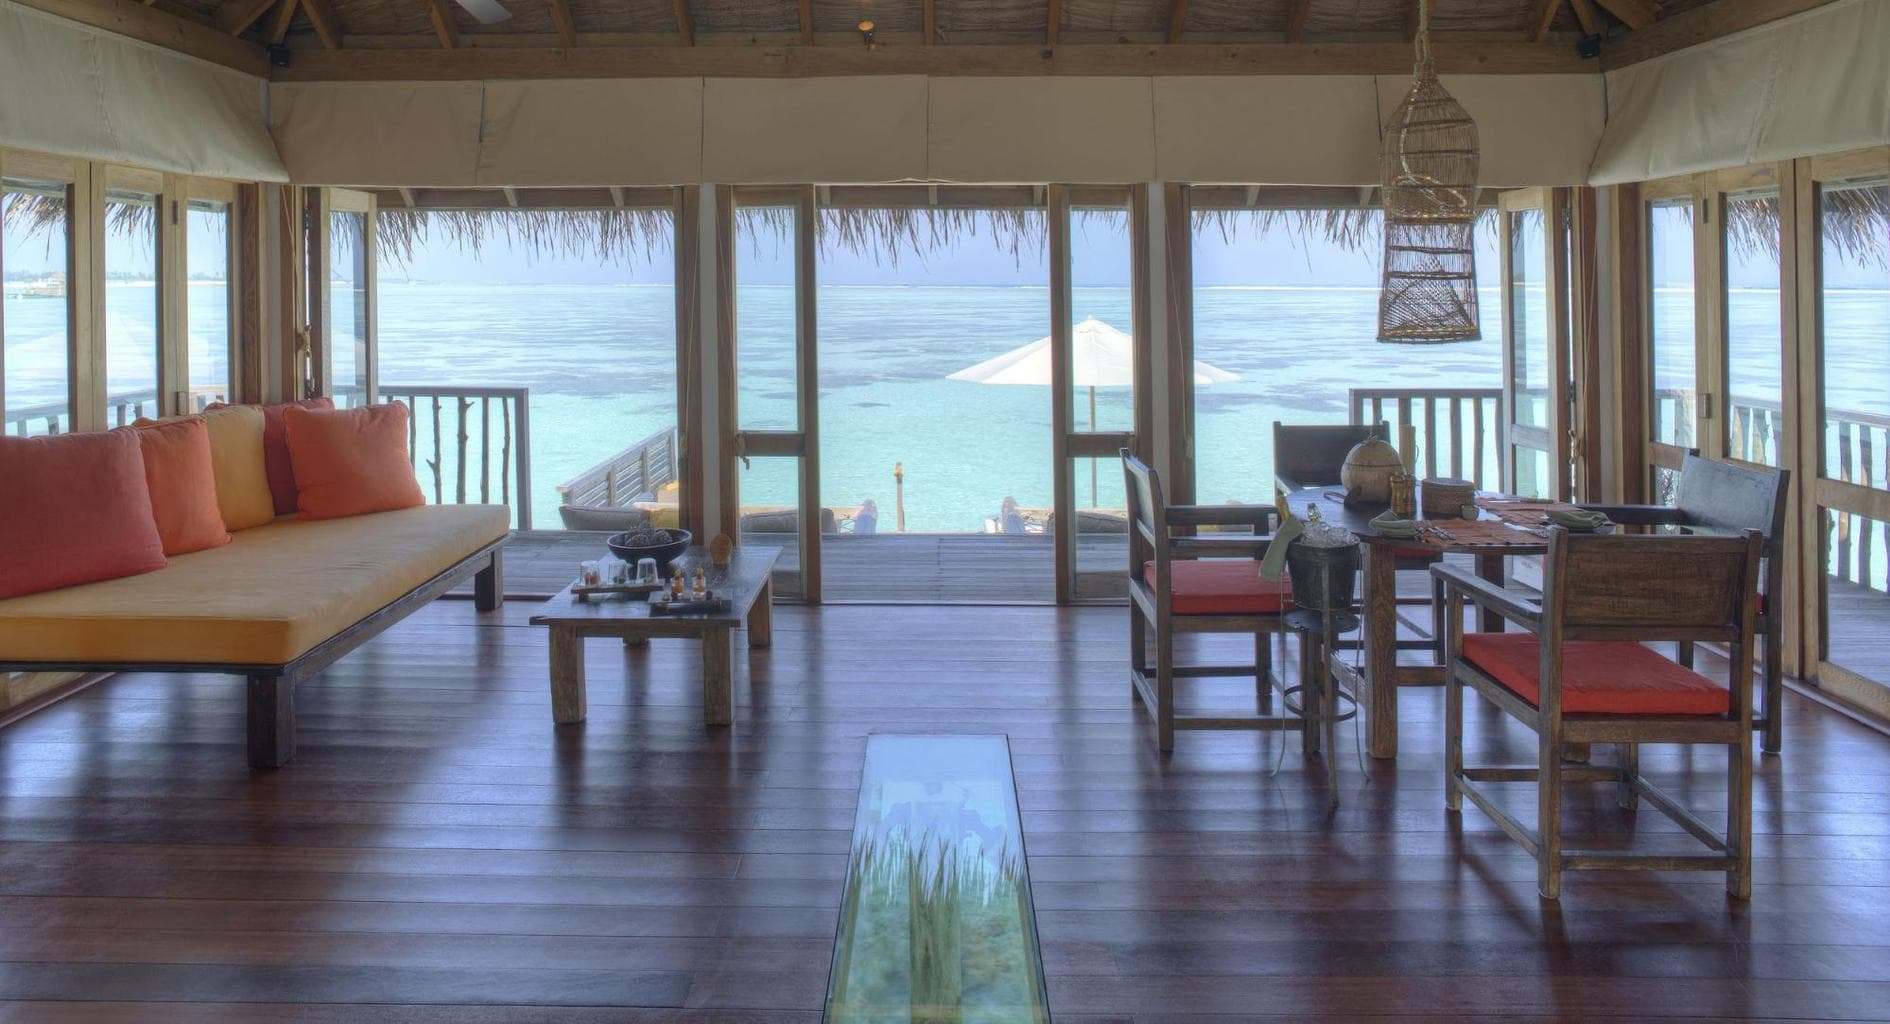 Living room of the Residence Villas - Courtesy of Gili Lankanfushi